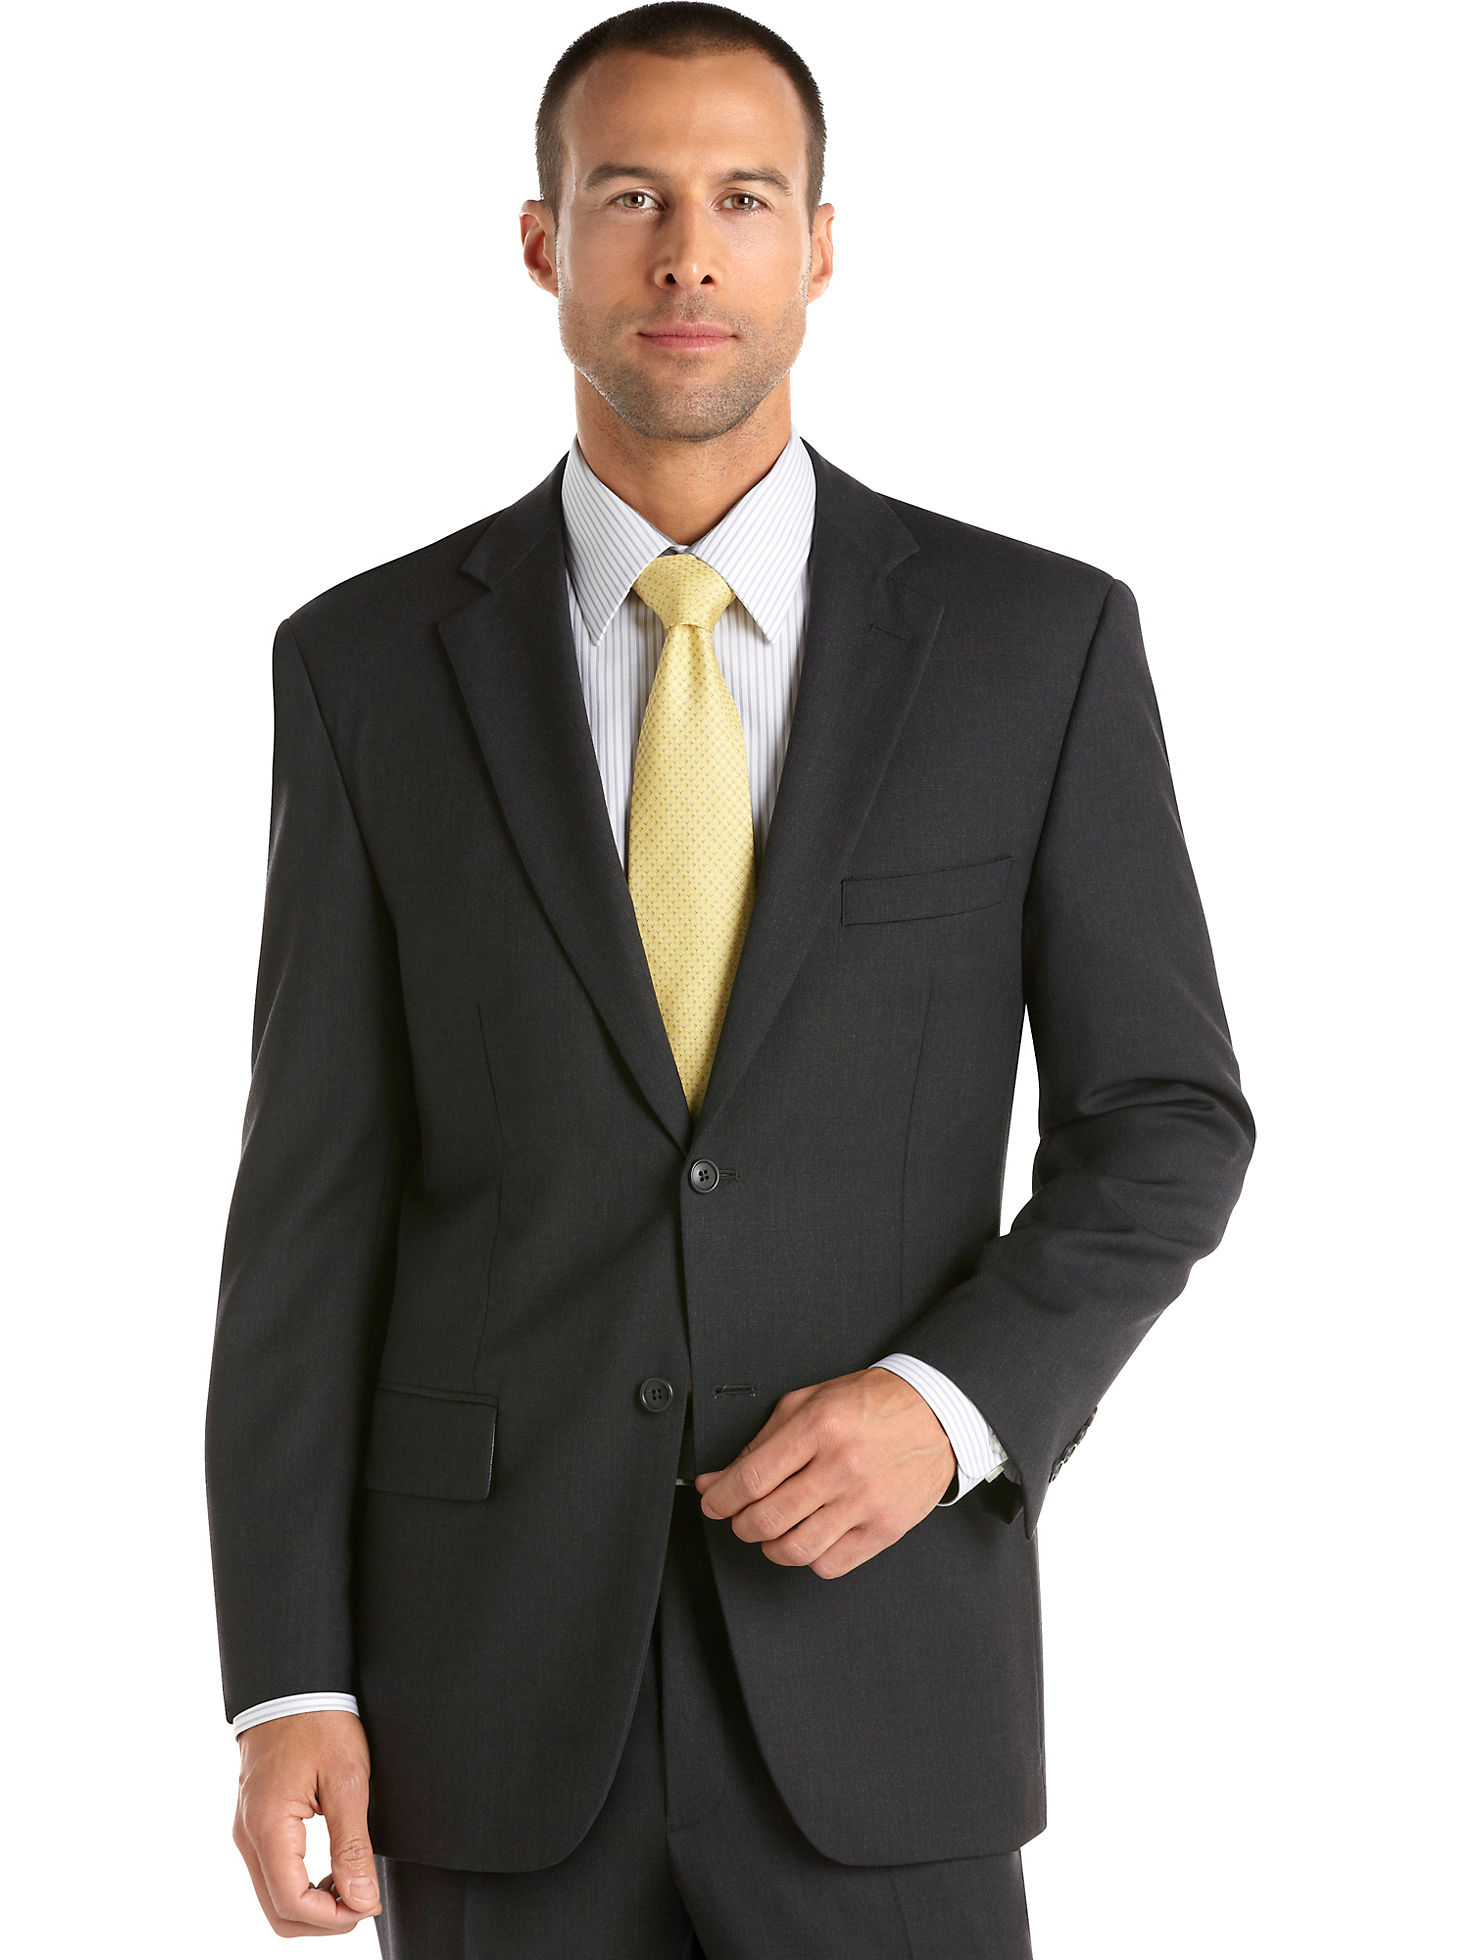 Tie and shirt for a charcoal suit for a baptism for Shirt and tie for charcoal suit